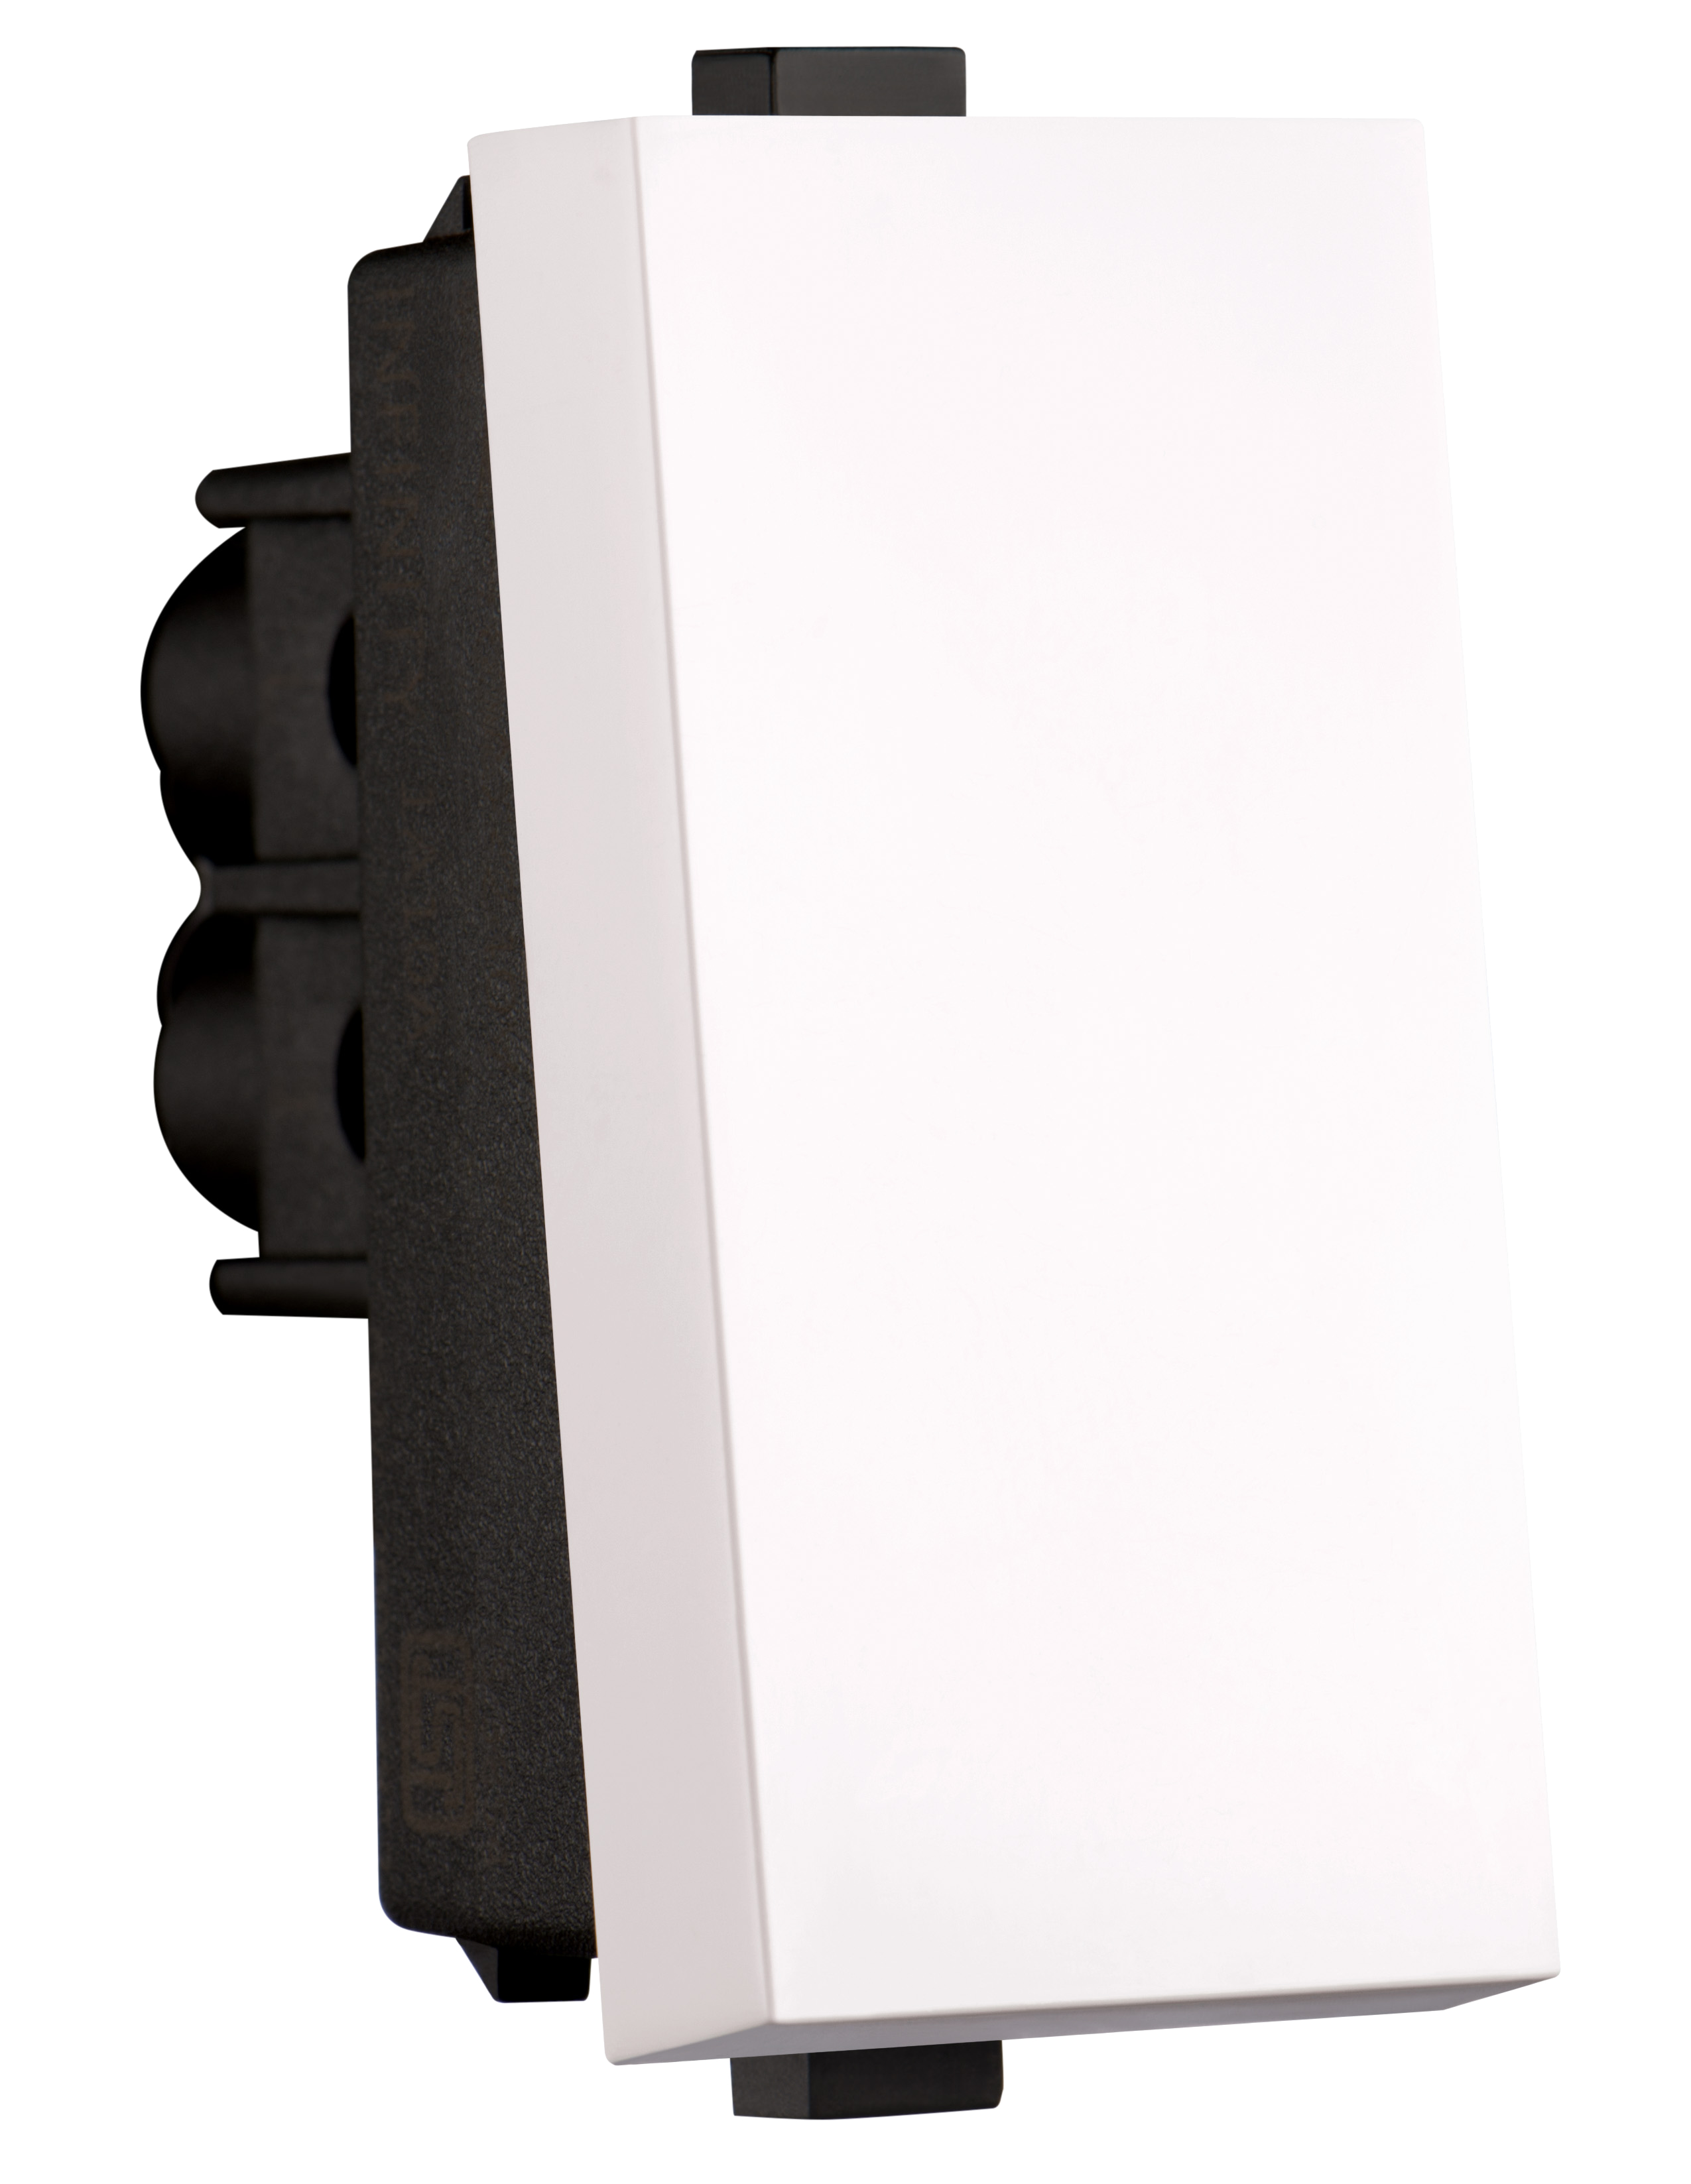 Infinity Electrical Switches - Infinity Switches Manufacturers ...